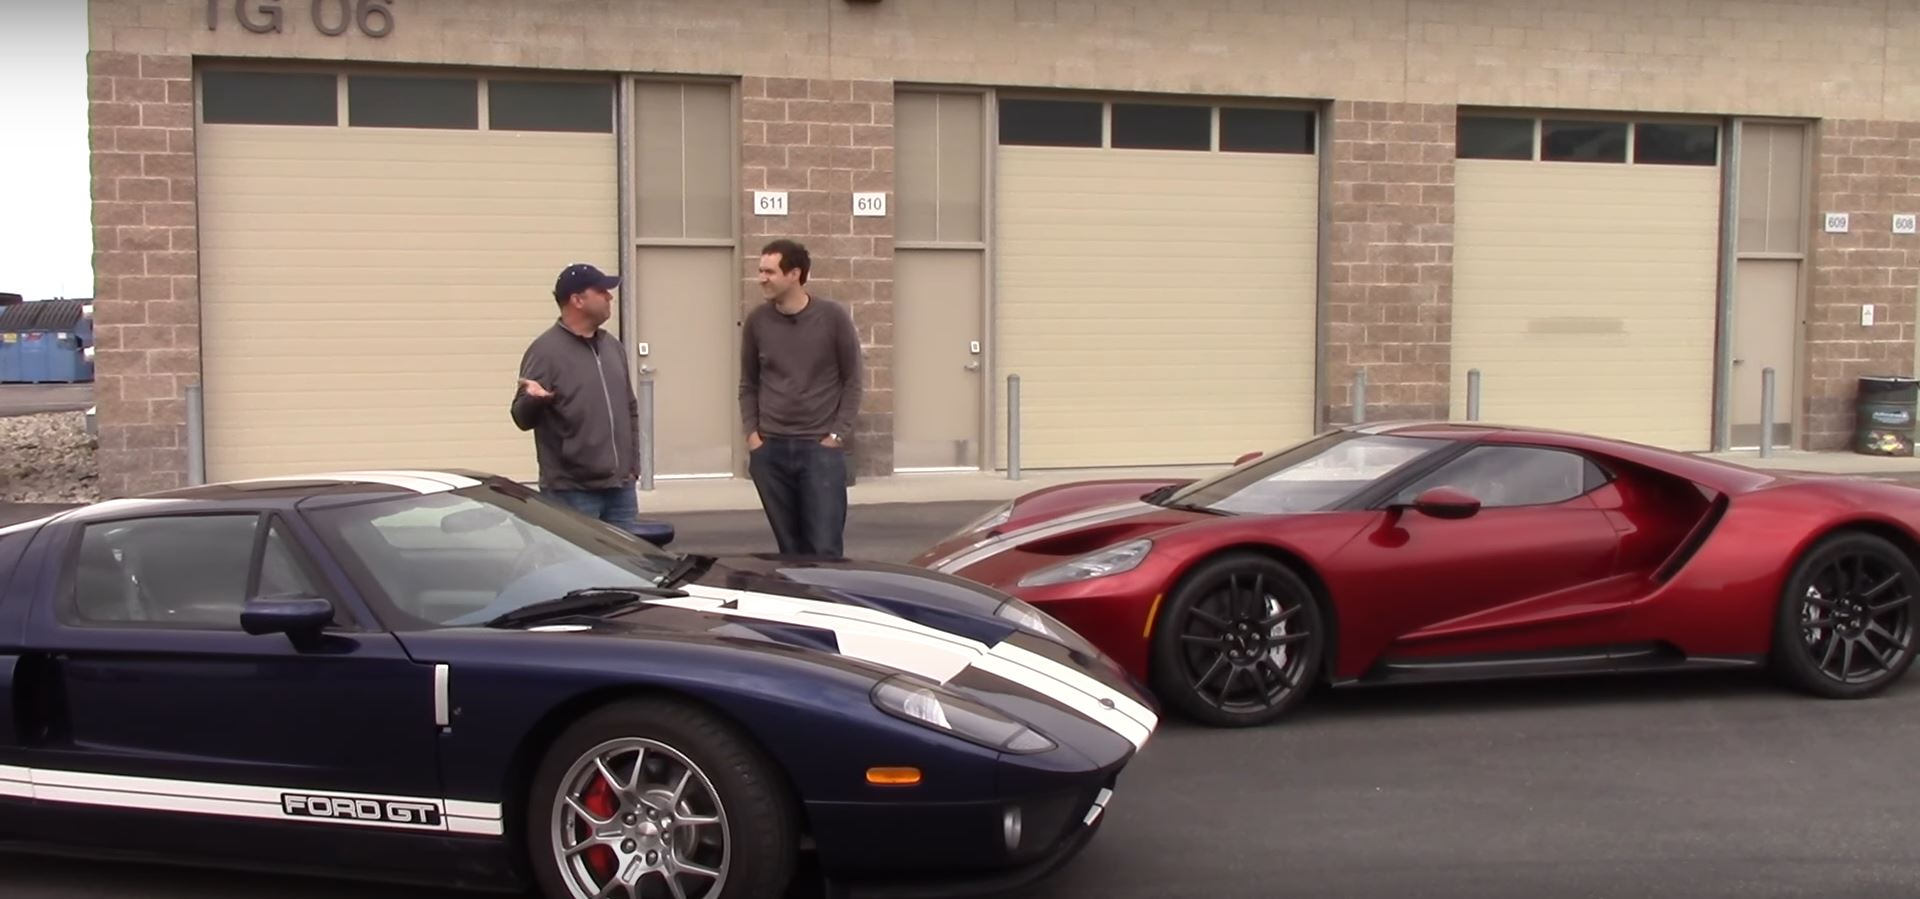 Ford Gt Is An American Supercar Evolution Comparison